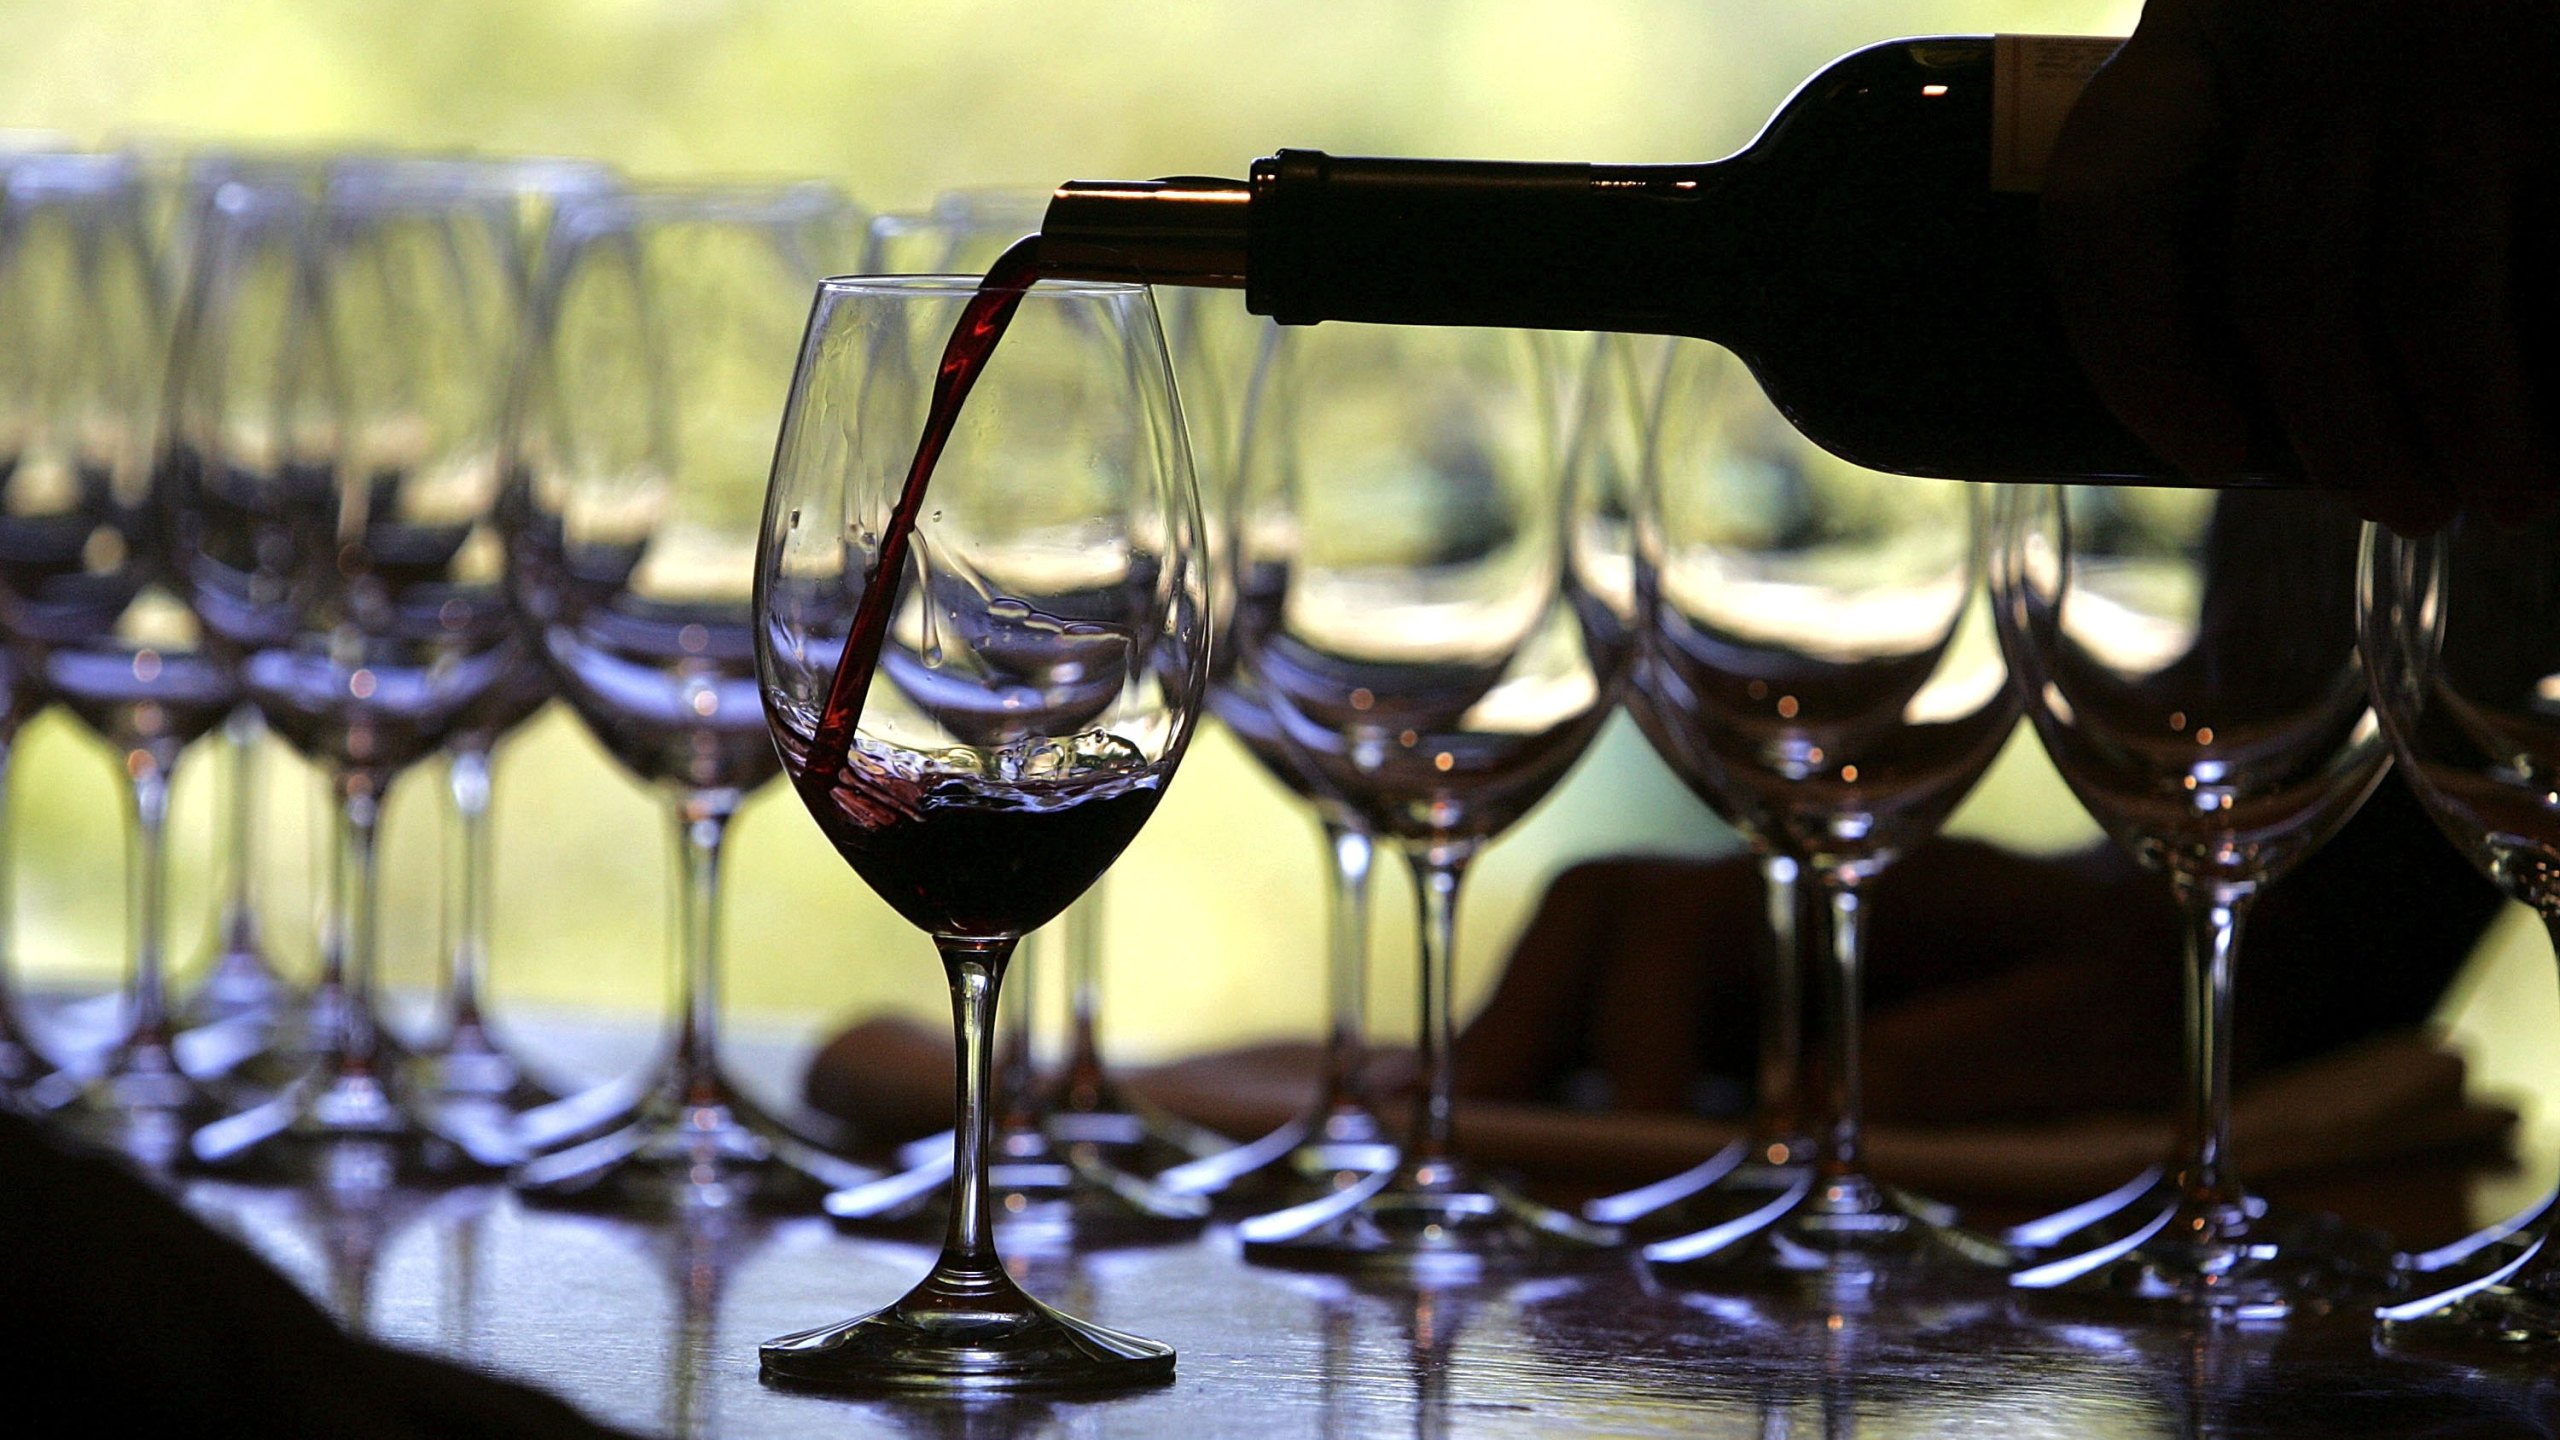 A worker at St. Supery winery pours a glass of wine for a tasting September 20, 2006 in Rutherford(. (Justin Sullivan/Getty Images)